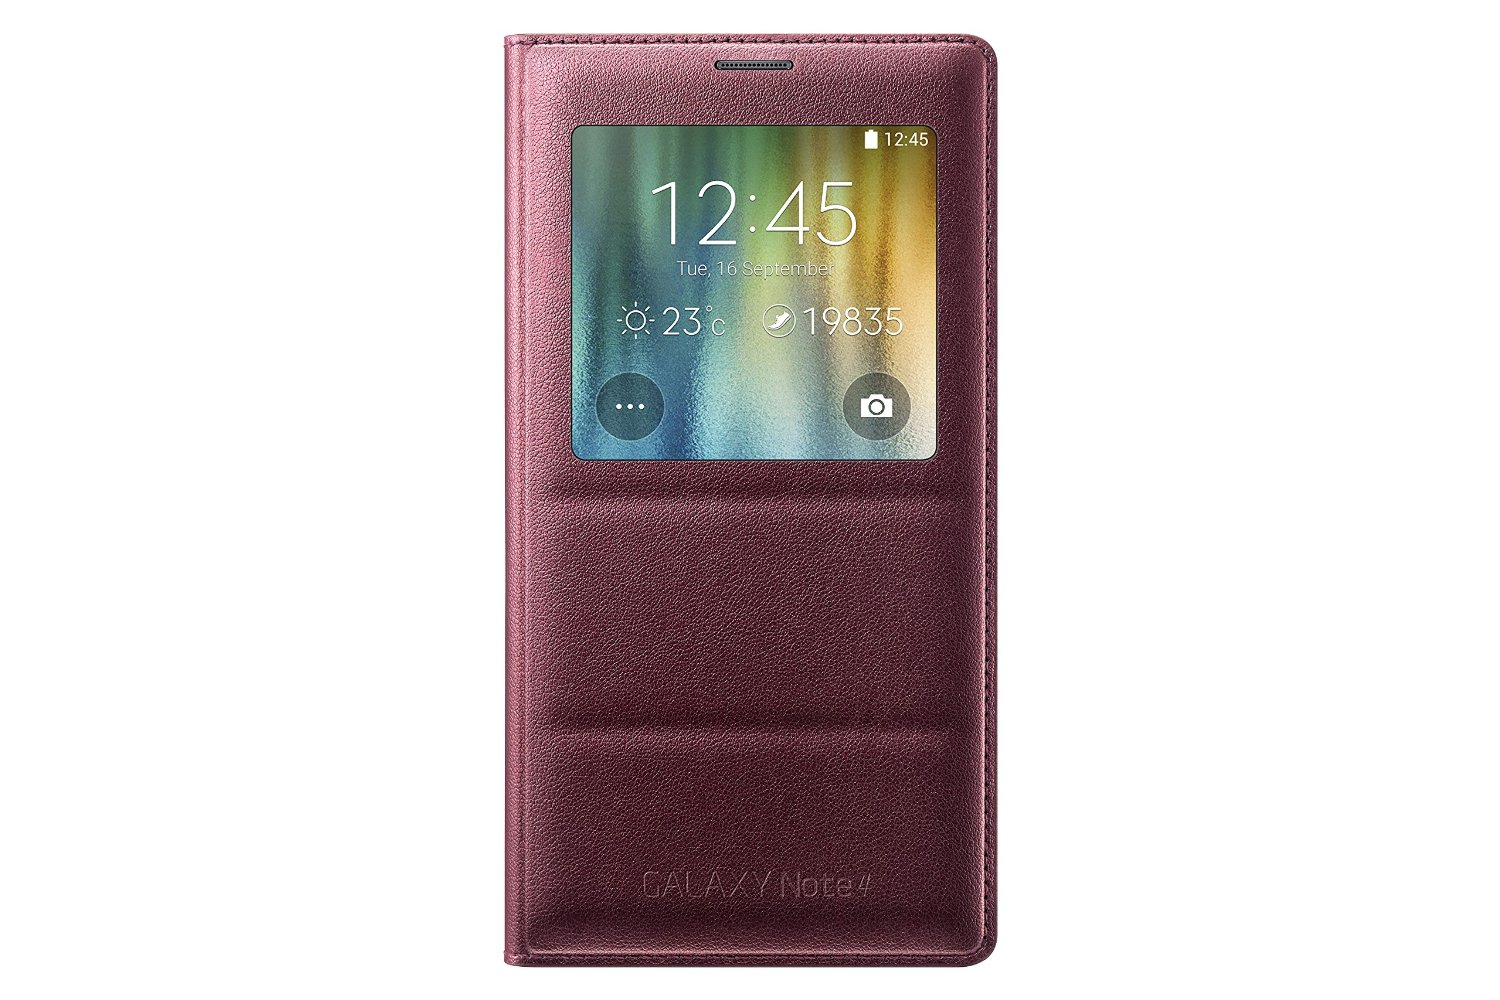 low priced 7566a 5288c Samsung S-View Flip Cover Folio Case for Samsung Galaxy Note 4 - Plum Red